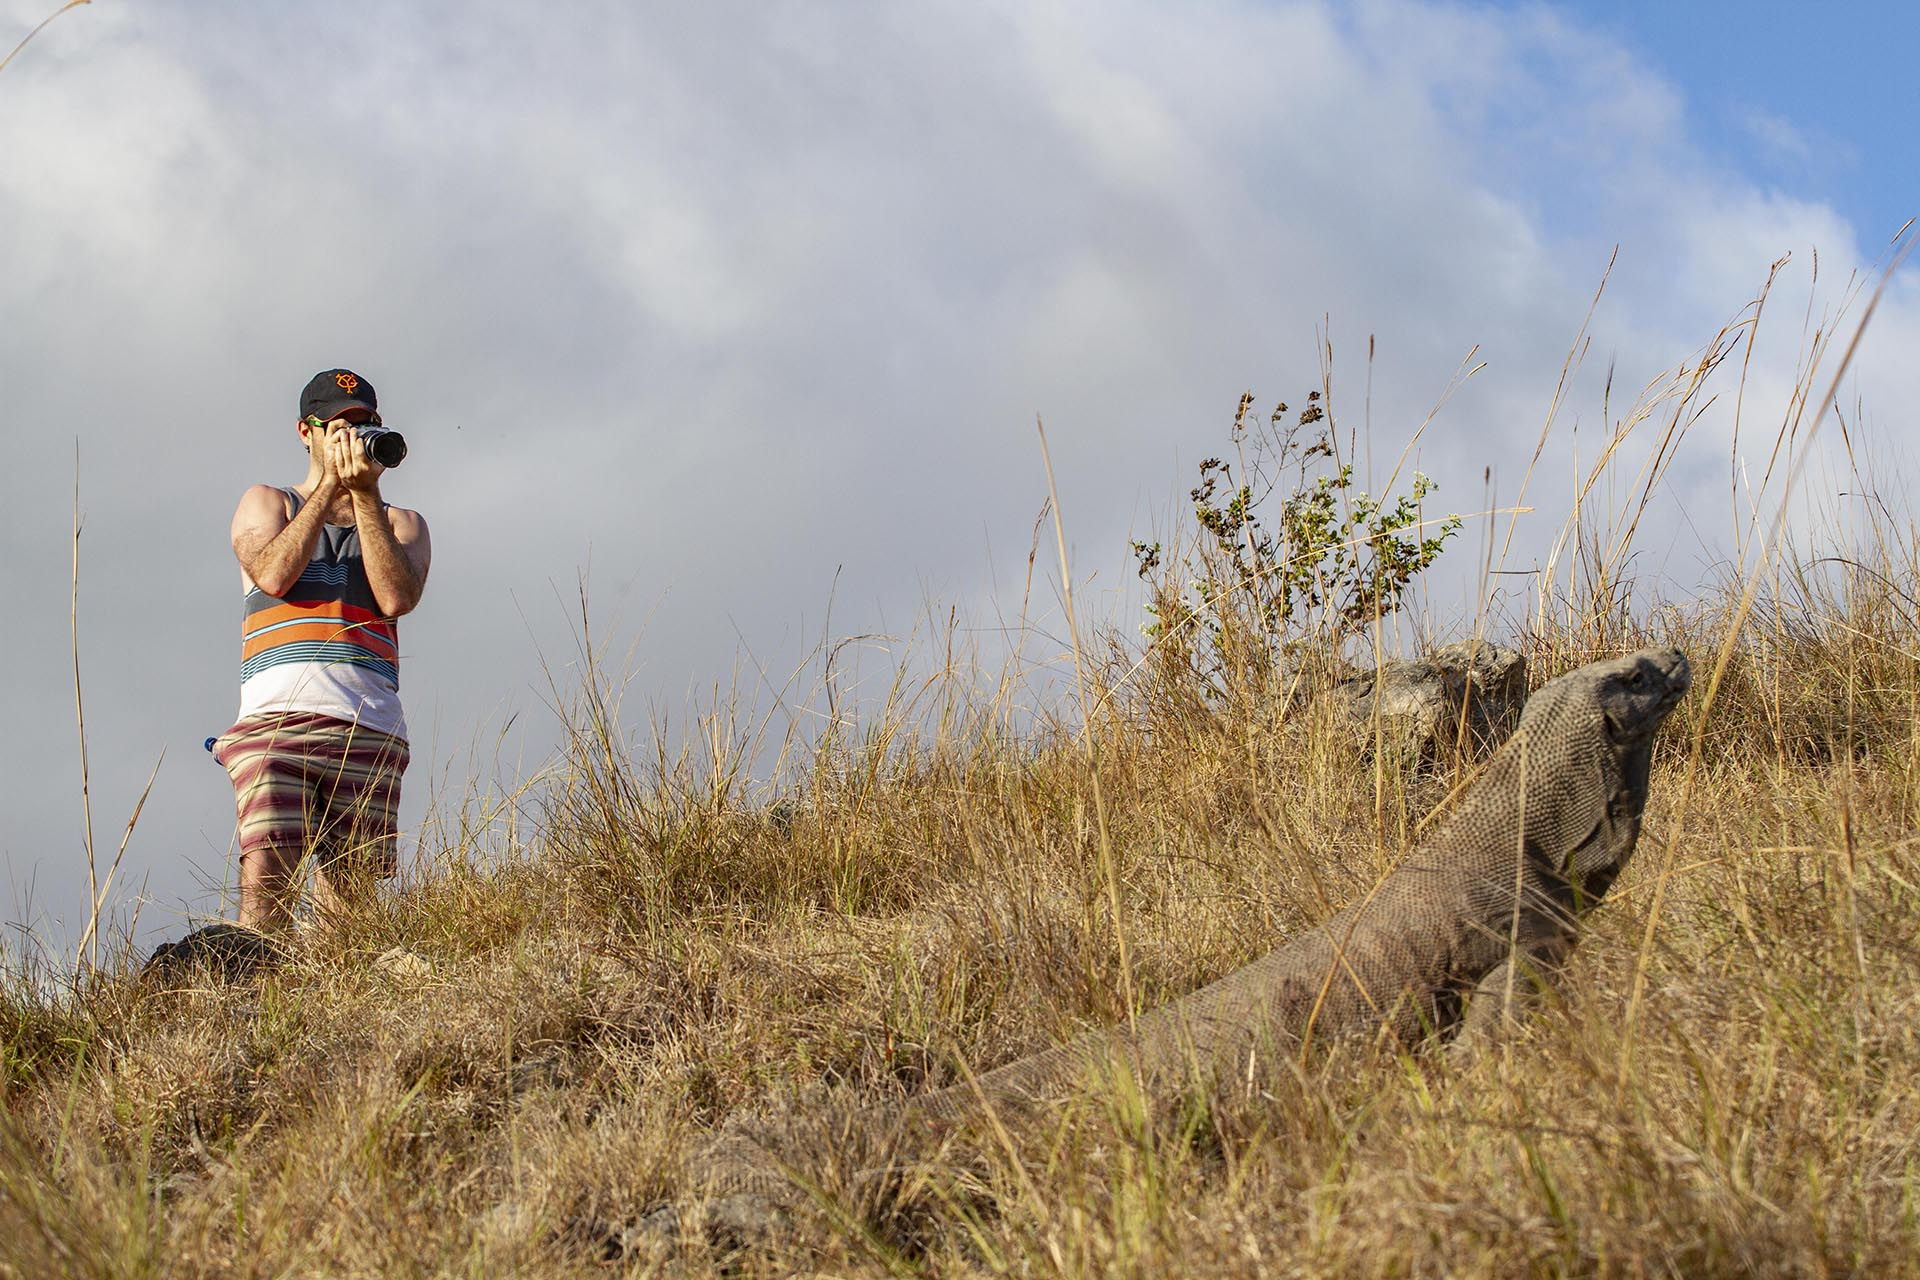 Guest photographing Komodo dragon on island